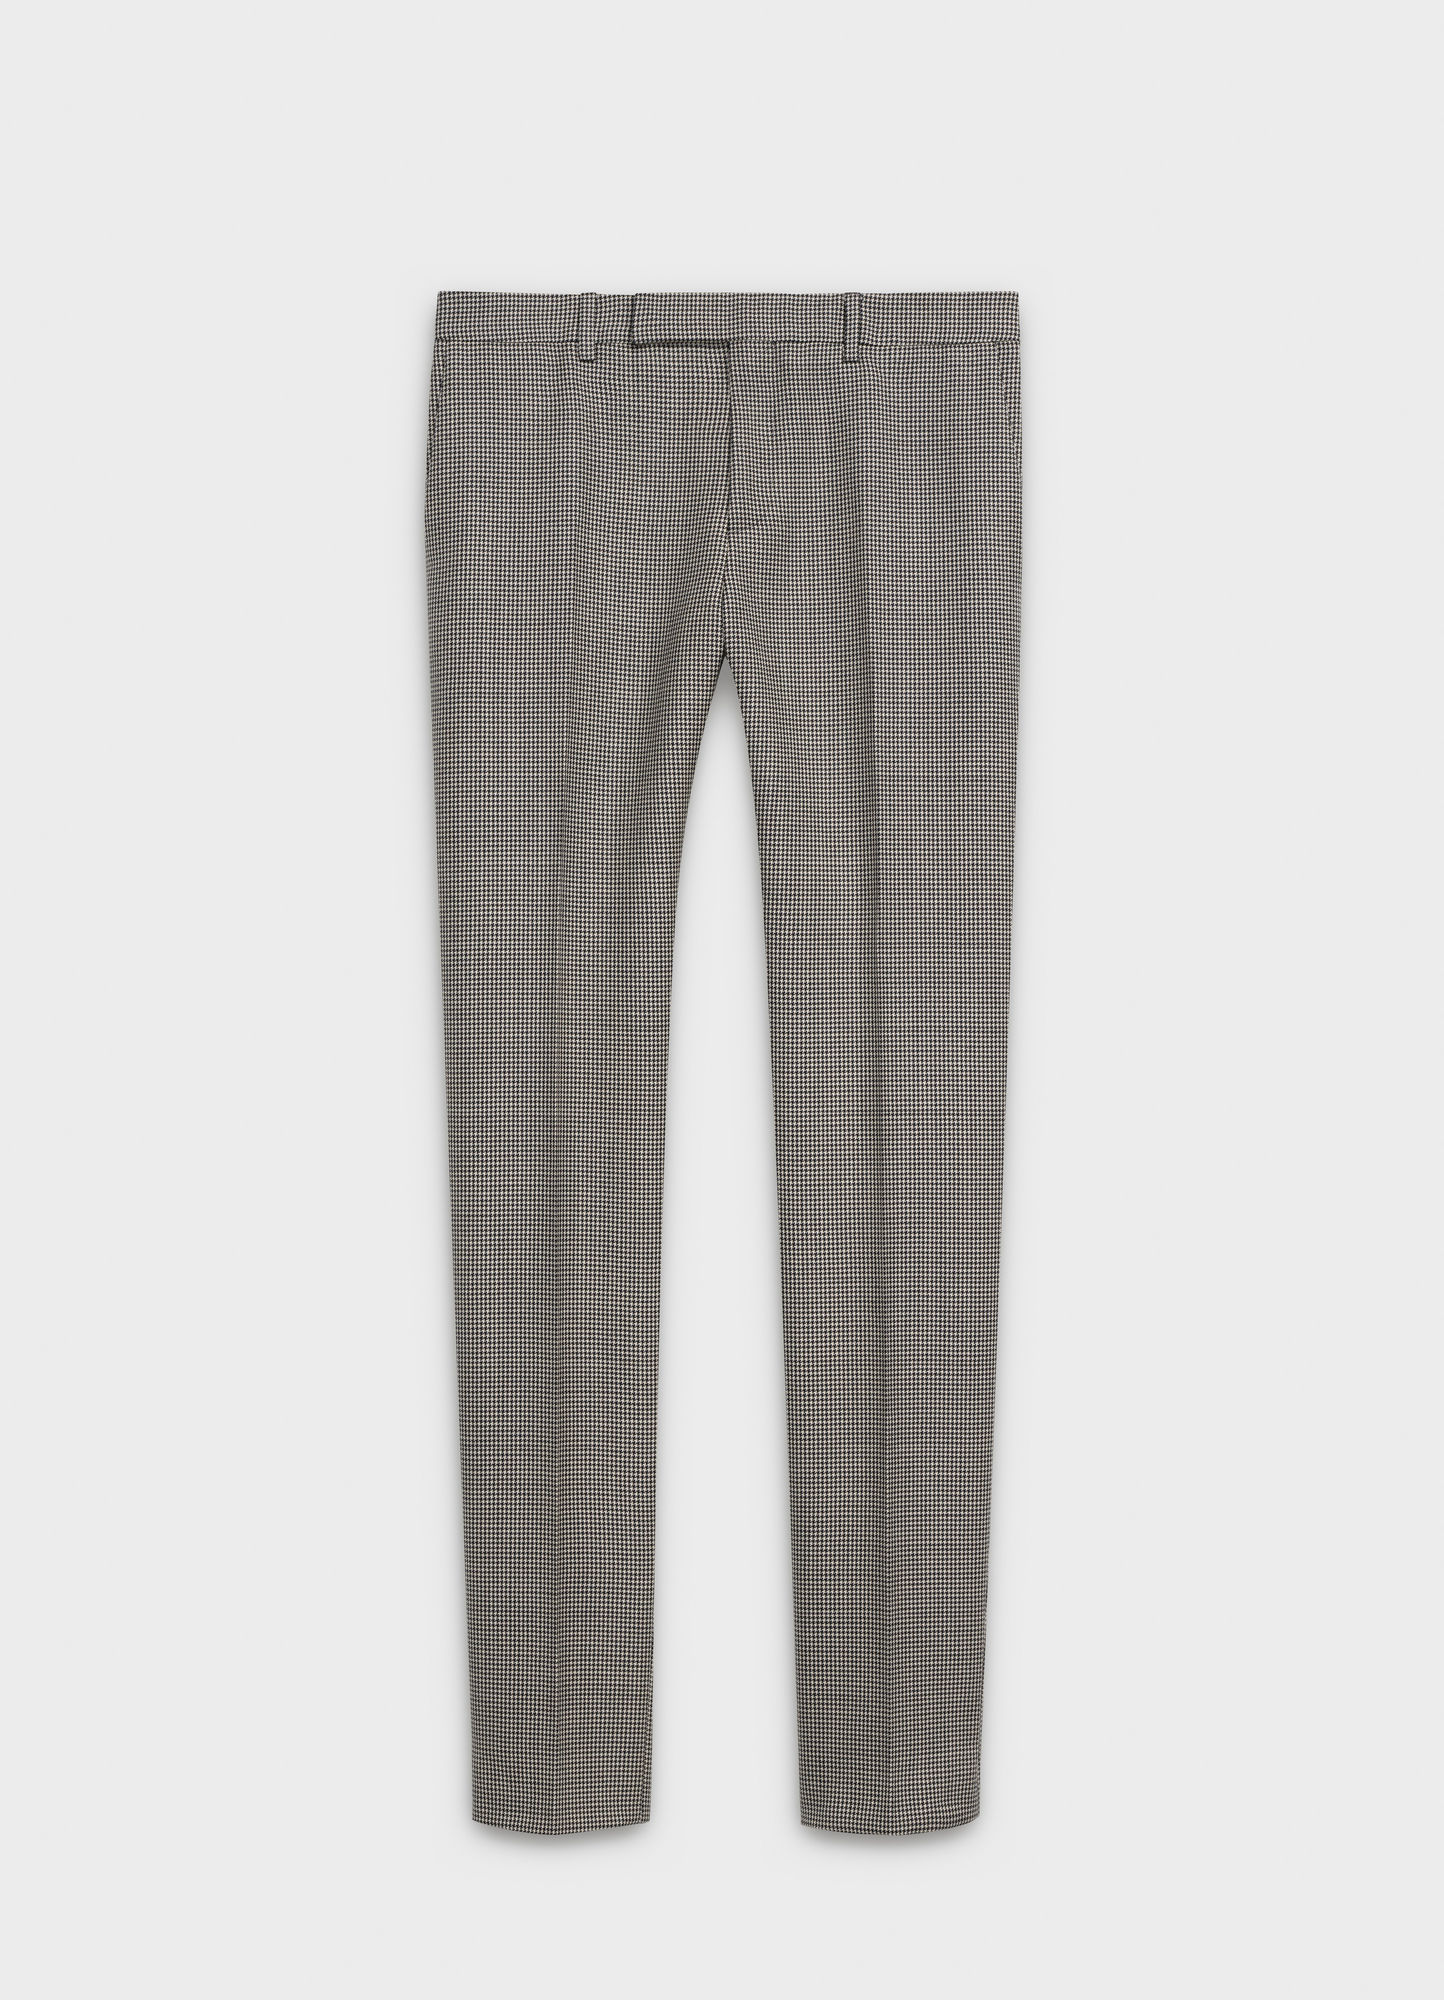 CLASSIC PANTS IN SMALL HOUNDSTOOTH   1,050 USD